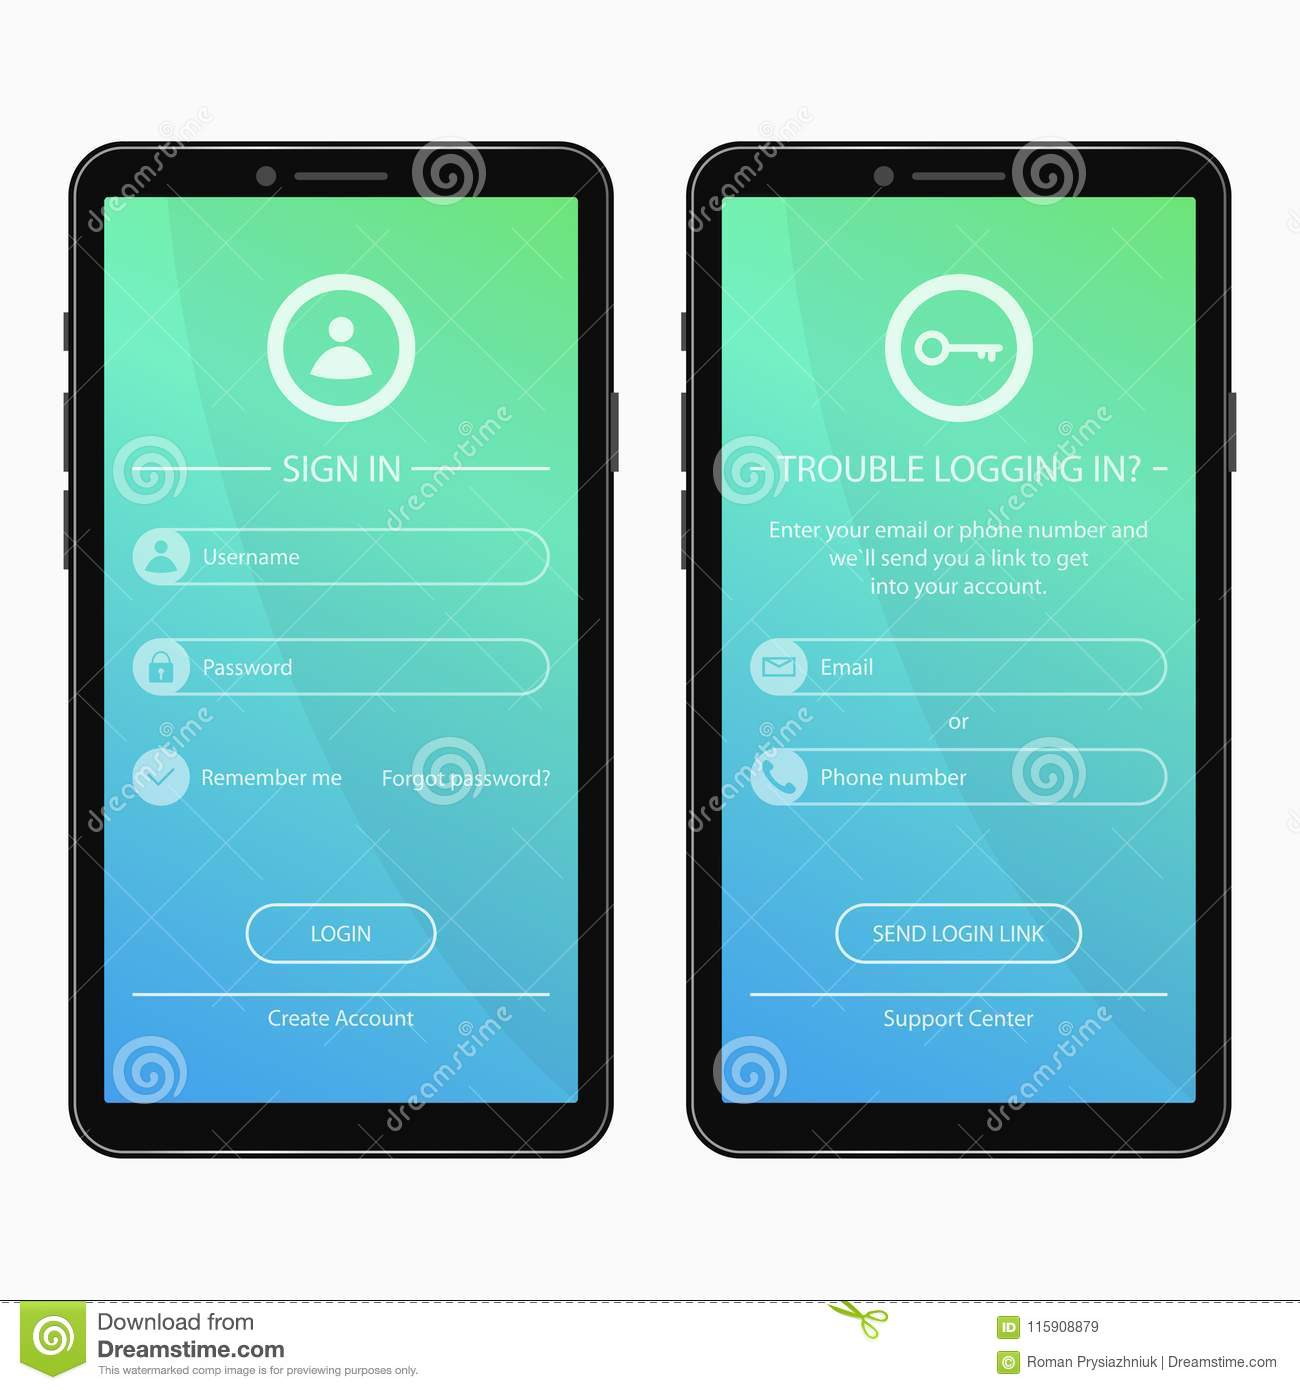 Login page and forgot password form design for mobile app. User interface template for smartphone applications. UI, GUI and UX.